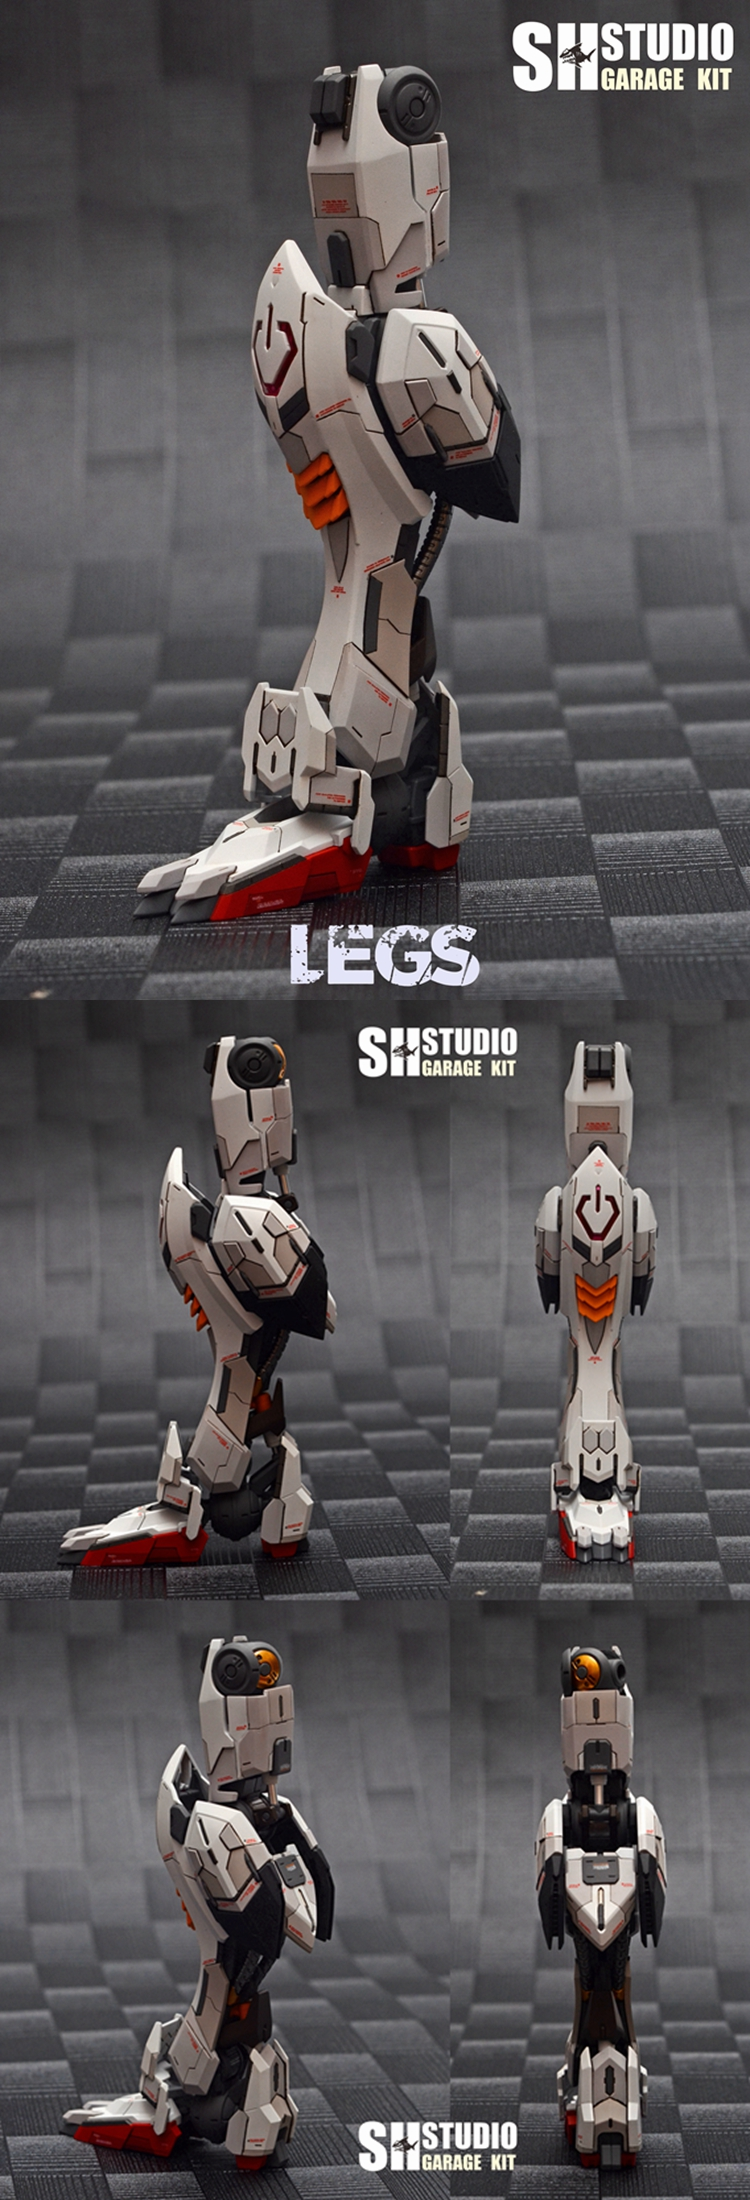 G551_barbatos_MG_SHSTUDIO_022.jpg